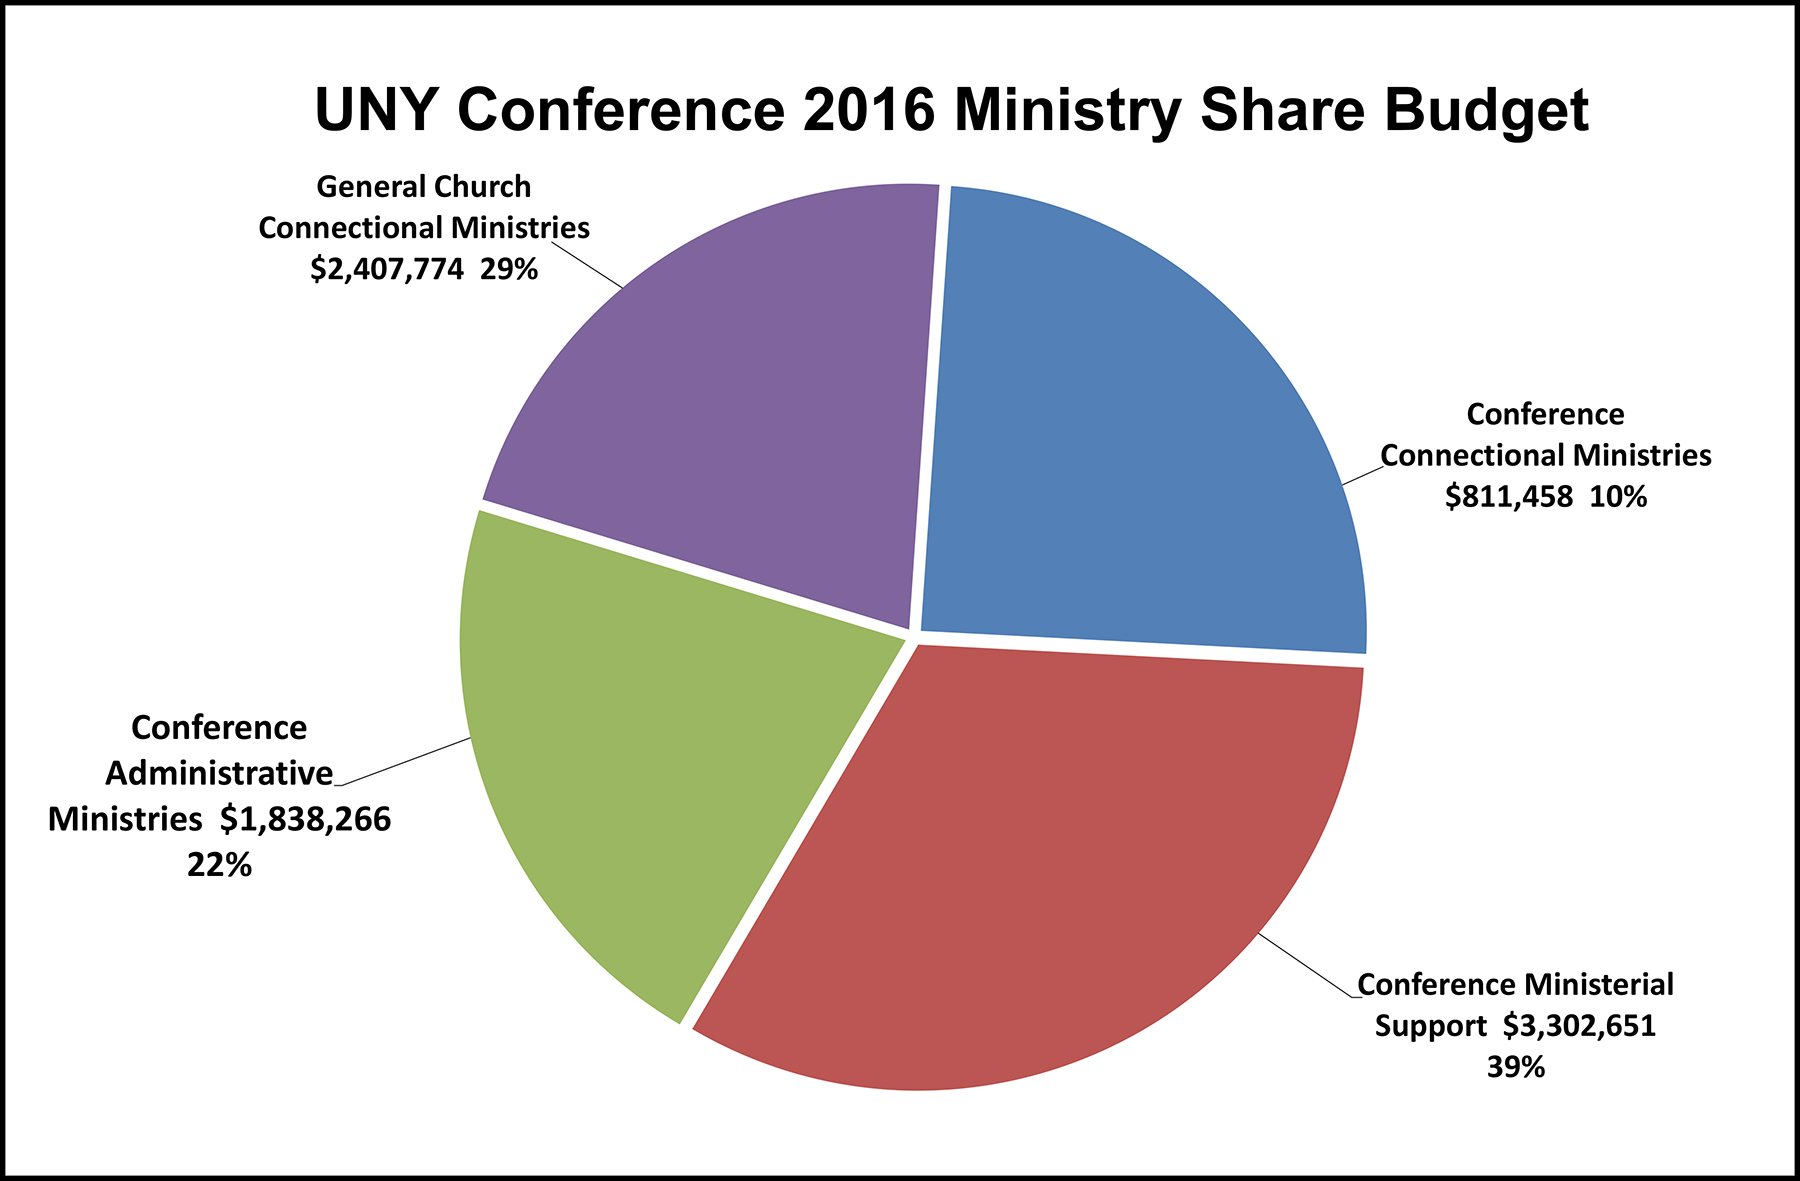 2015 annual conference faqs the upper ny conference please share a pie chart of the 2016 ministry share budget nvjuhfo Gallery